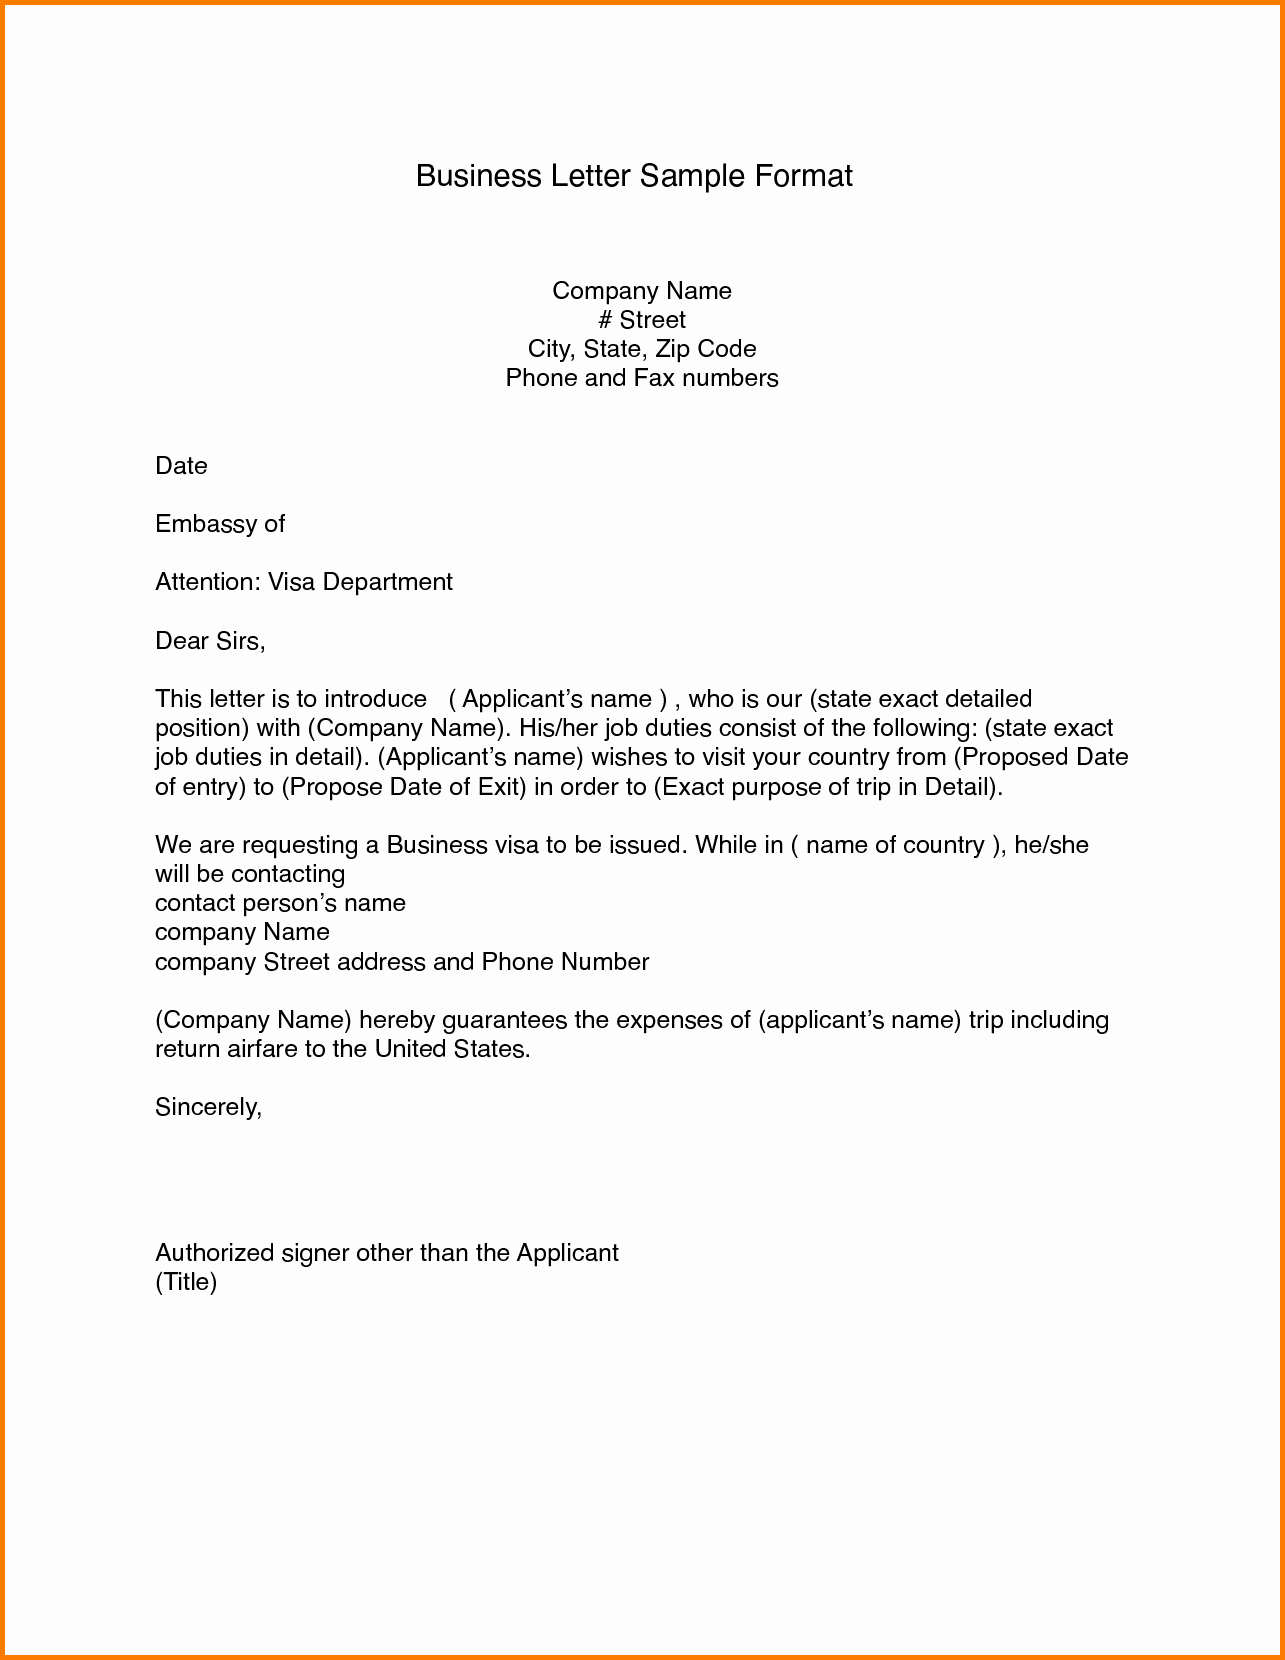 Writing A formal Business Letter Elegant 7 formal Business Letters Examples